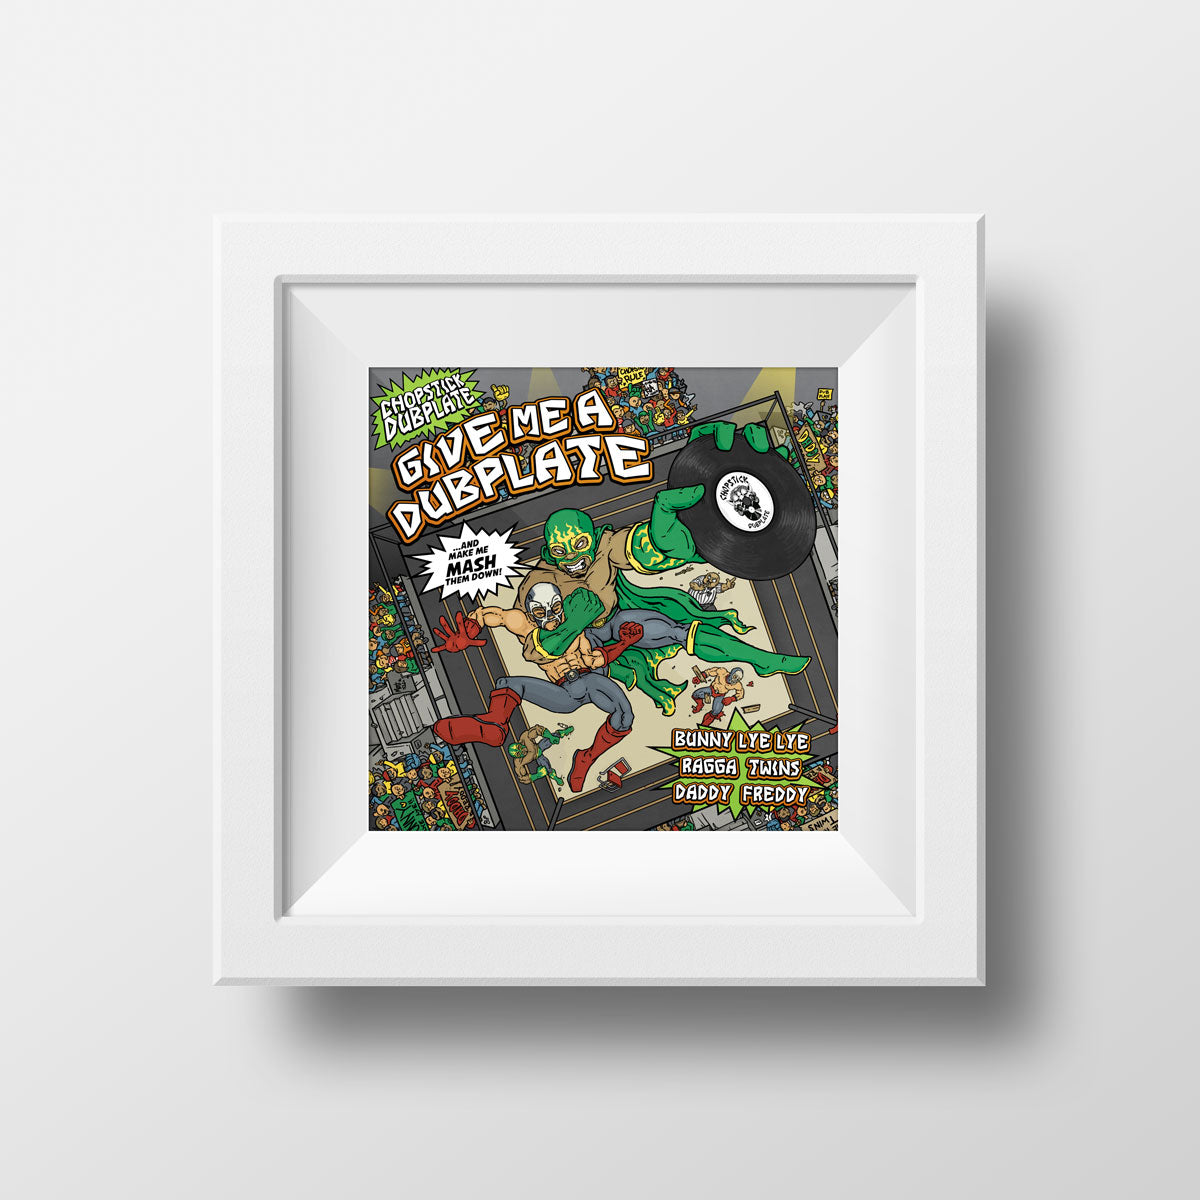 Give me a Dubplate Art Print by Chopstick Dubplate